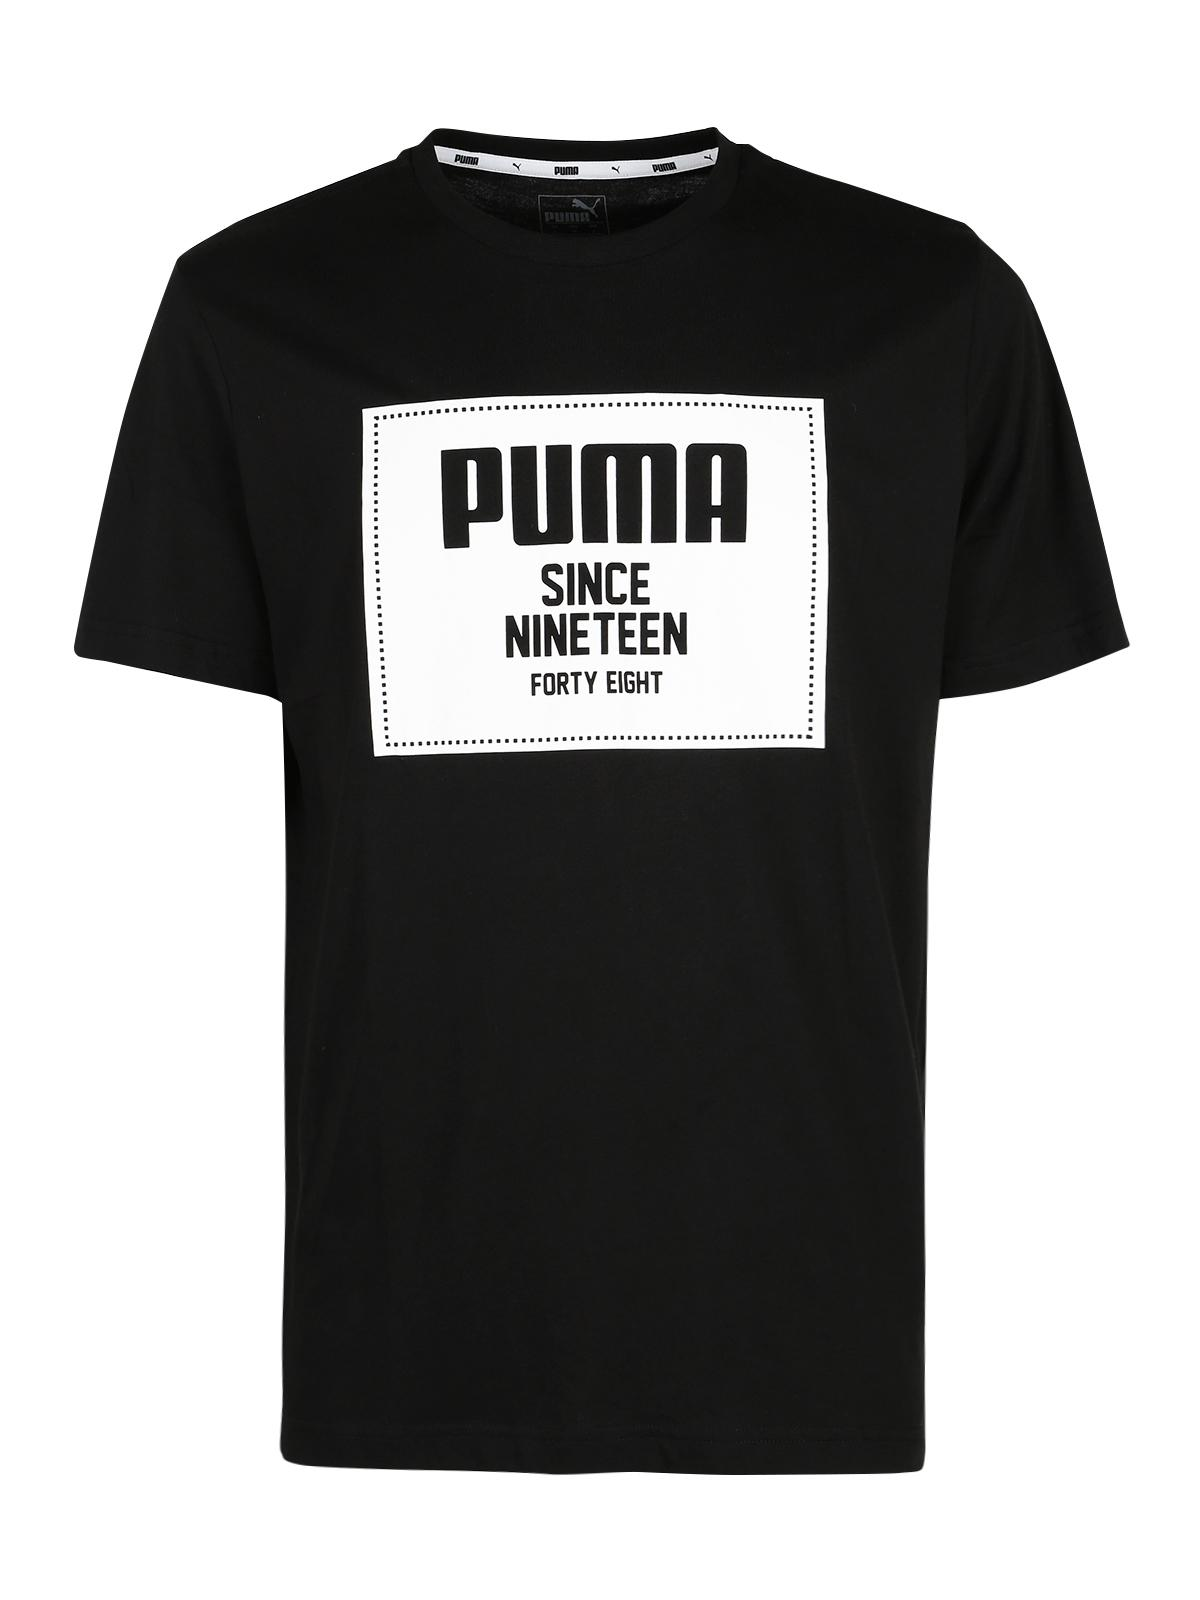 Rebel block basic Tee T shirt nera con stampa puma